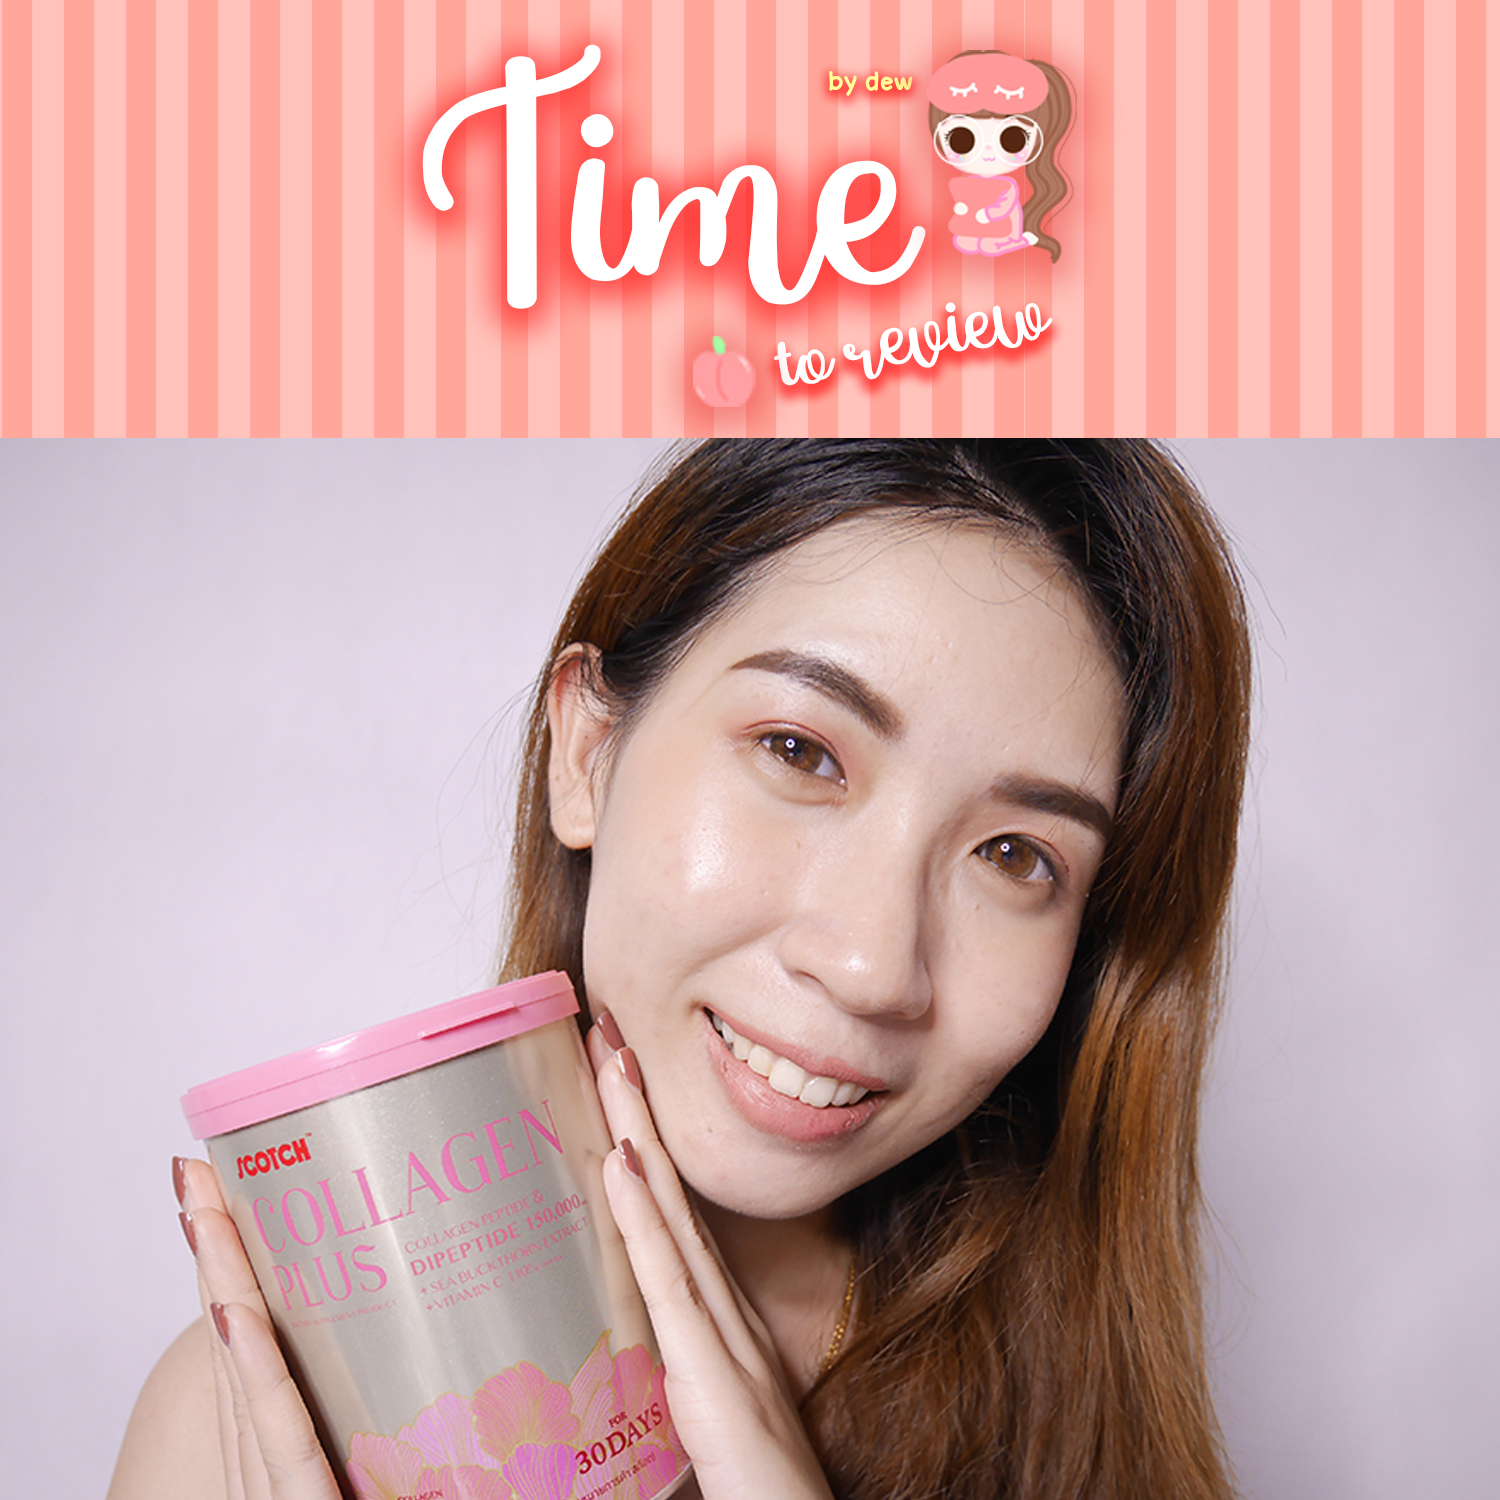 [Review]Scotch collagen plus